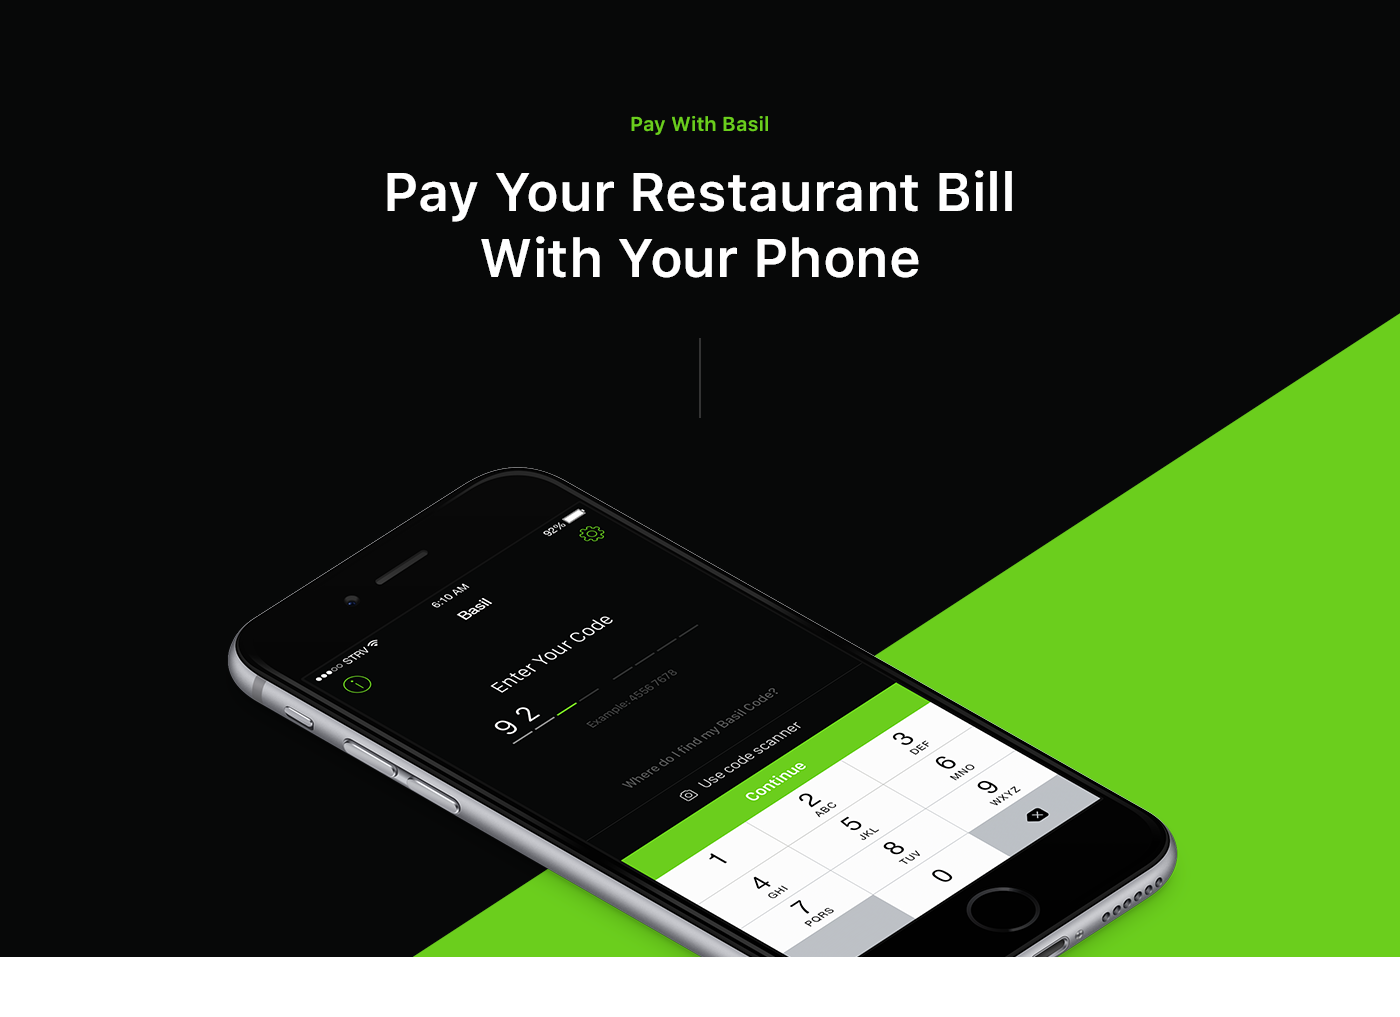 Pay With Basil on Behance